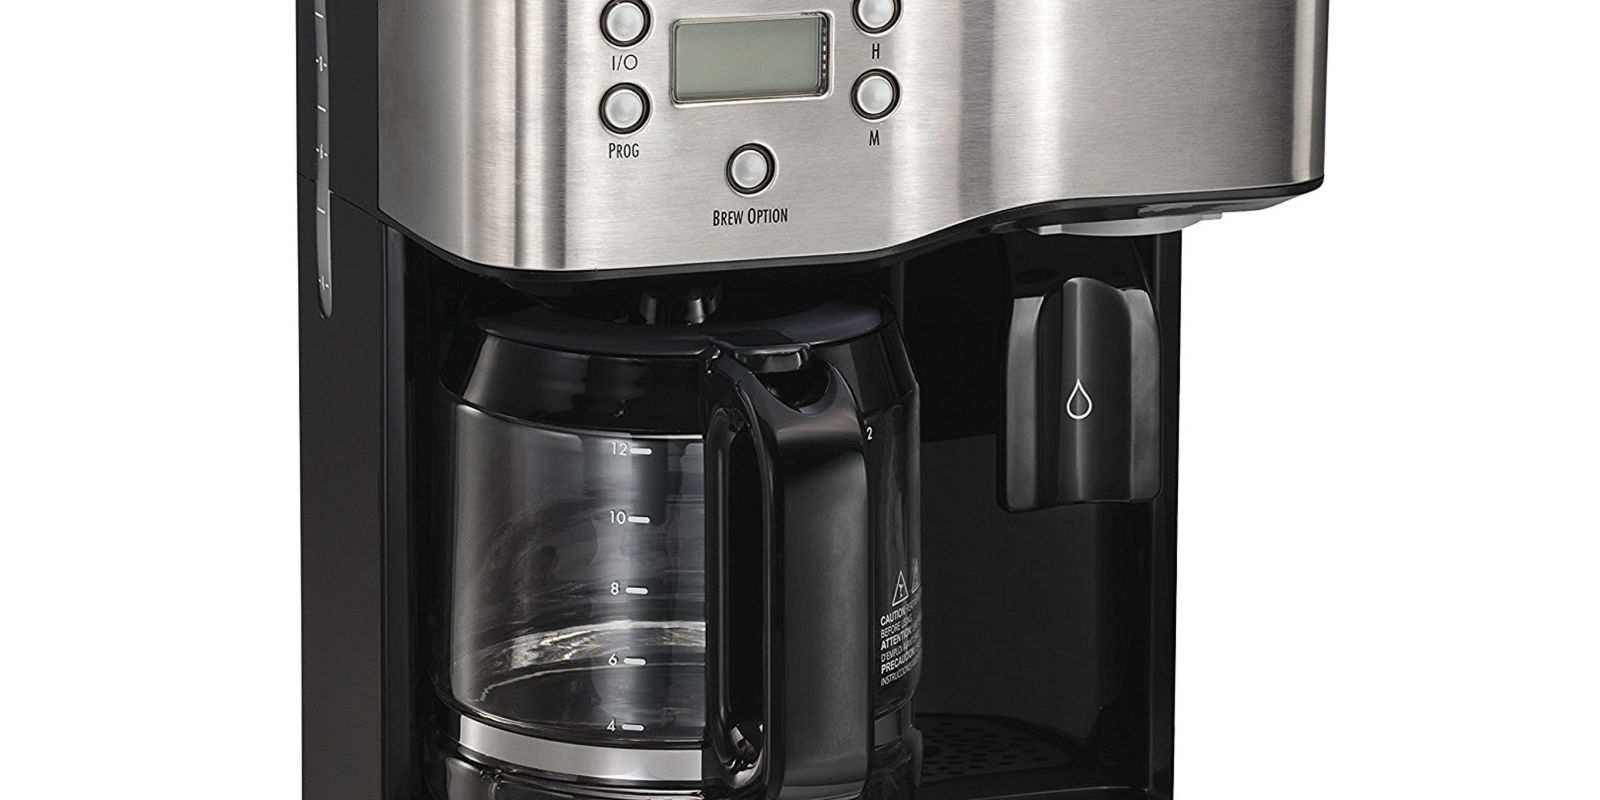 Hamilton Beach Coffeemaker & Hot Water Dispenser Review, Price and Features